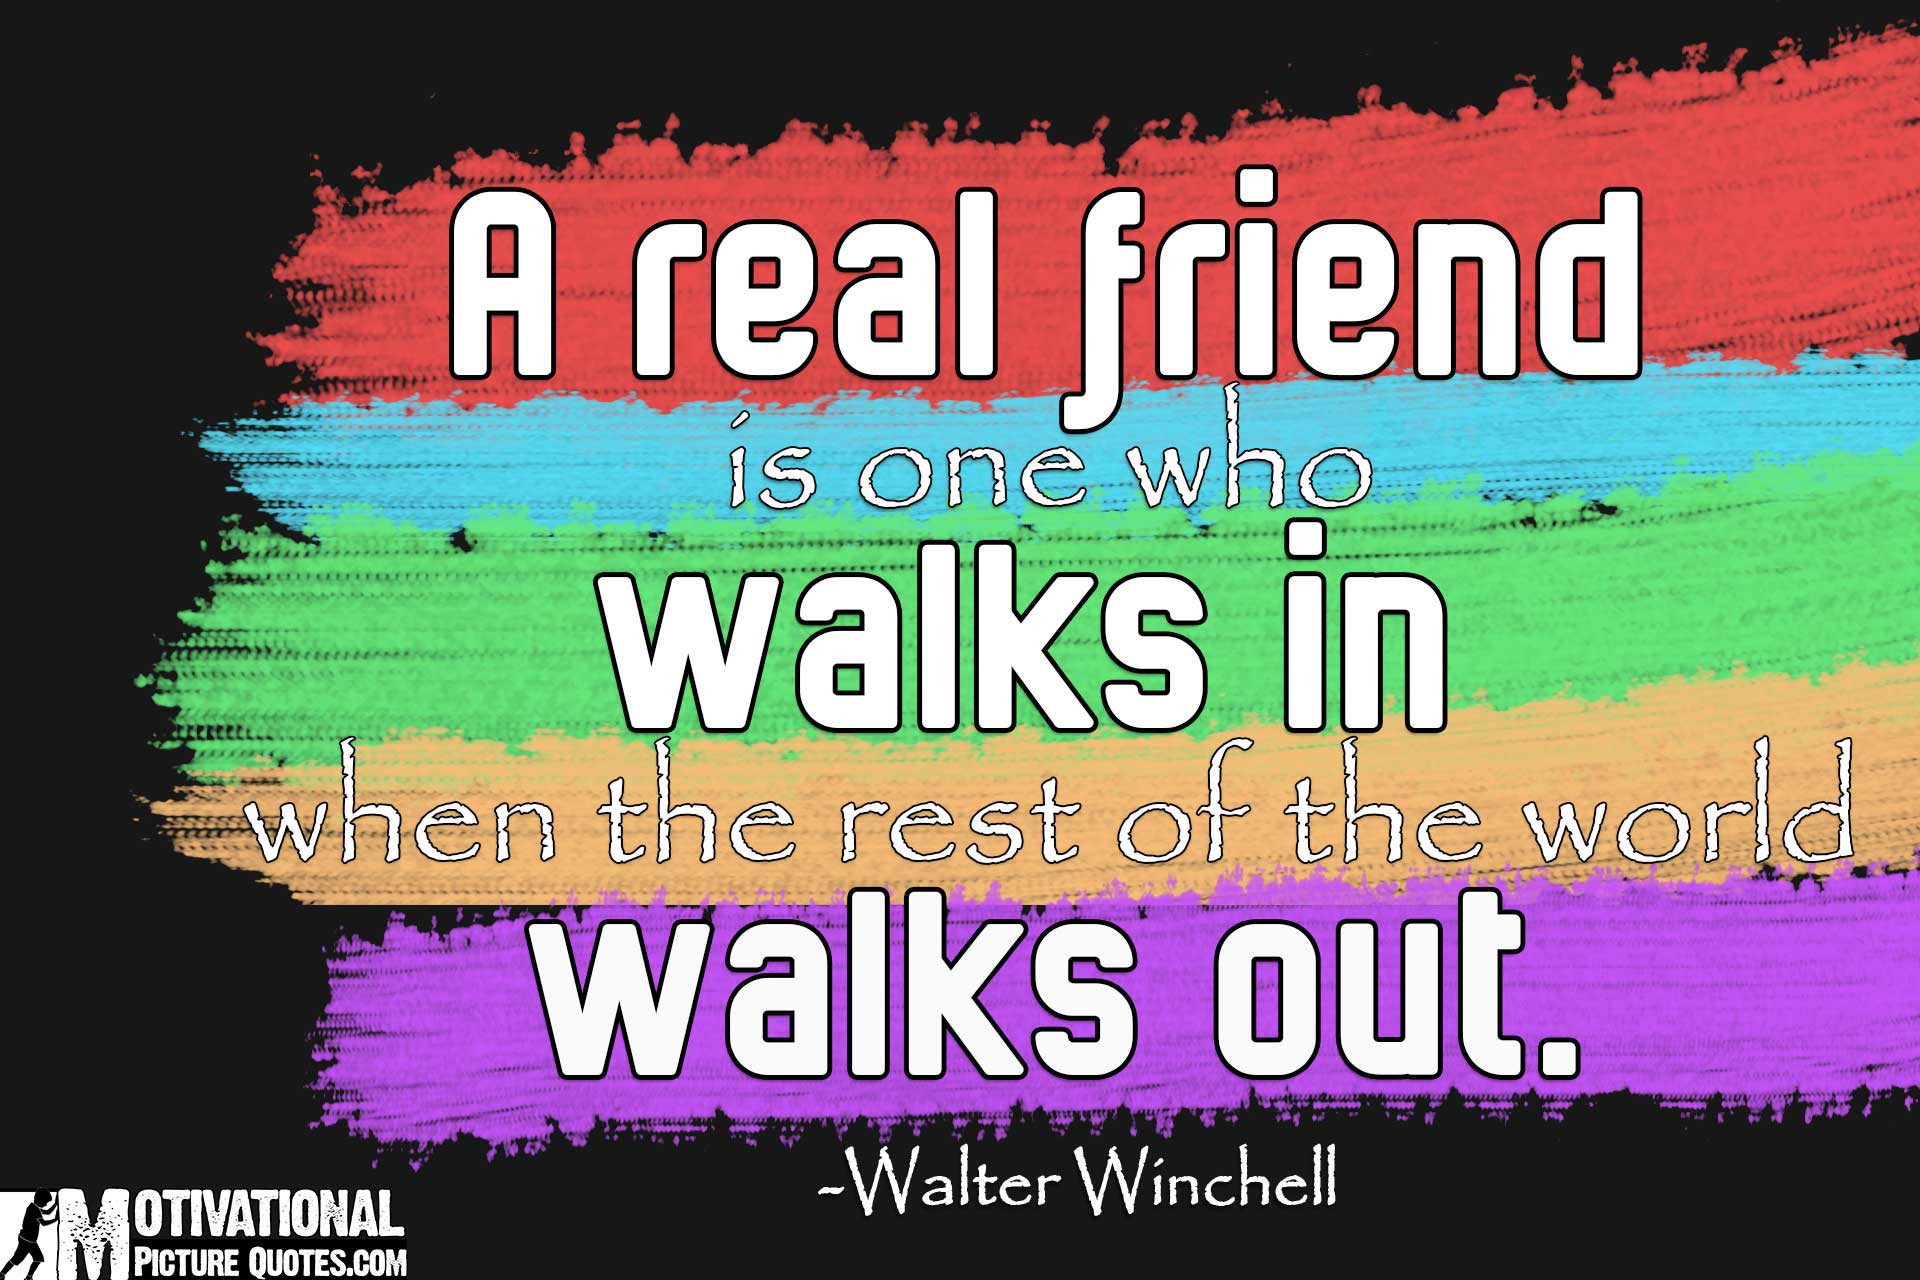 Inspirational Quotes About Friendship: 25+ Inspirational Friendship Quotes Images